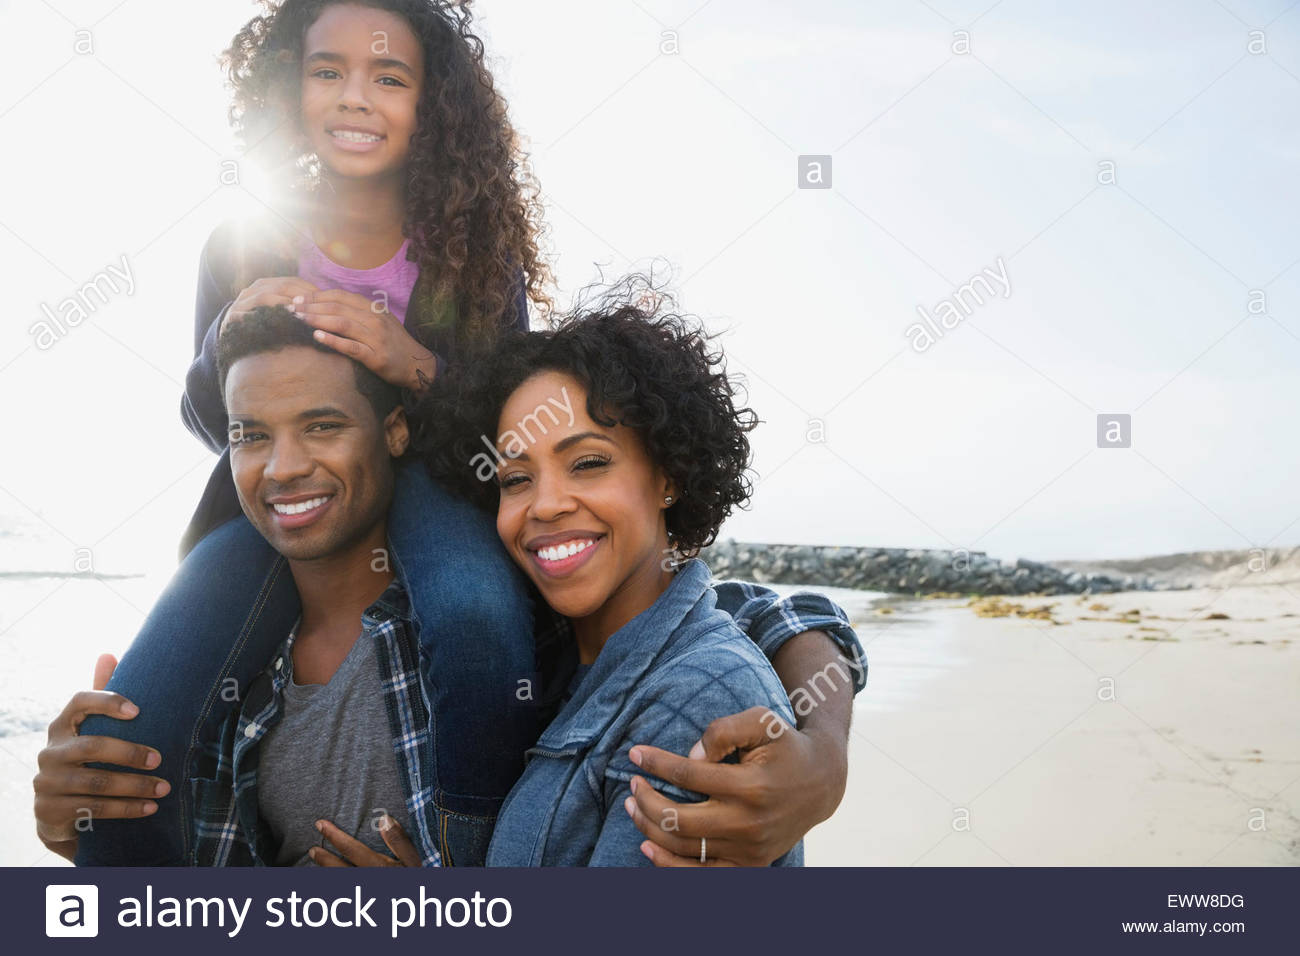 Portrait smiling family on sunny beach - Stock Image